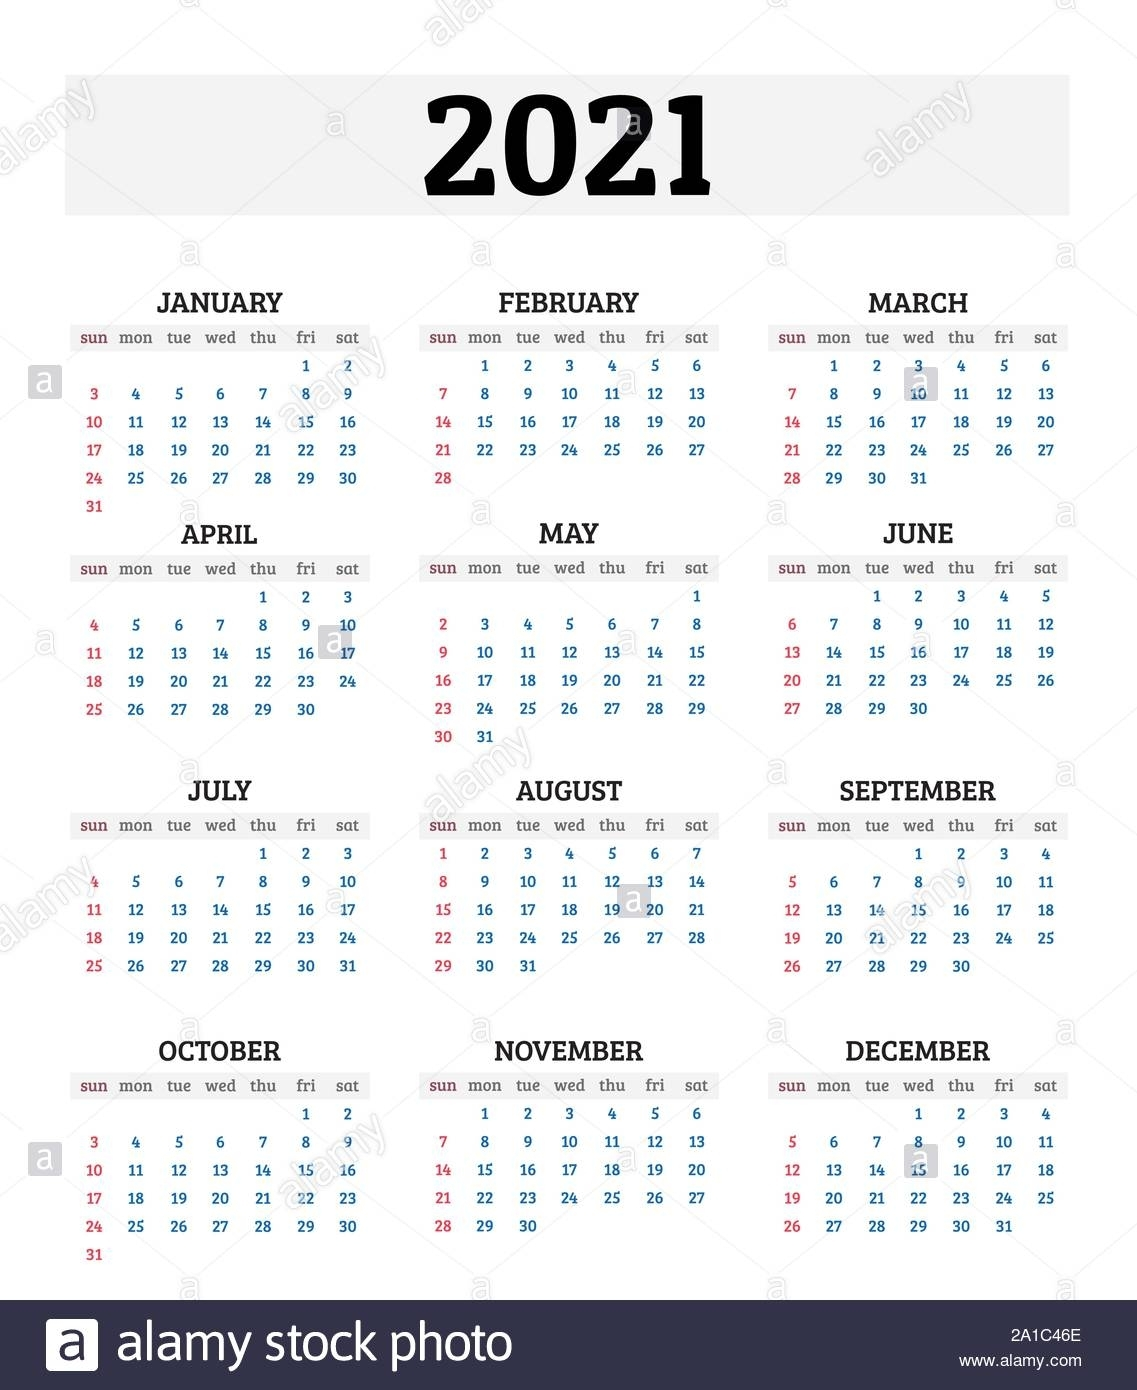 Annual Calendar High Resolution Stock Photography And Images